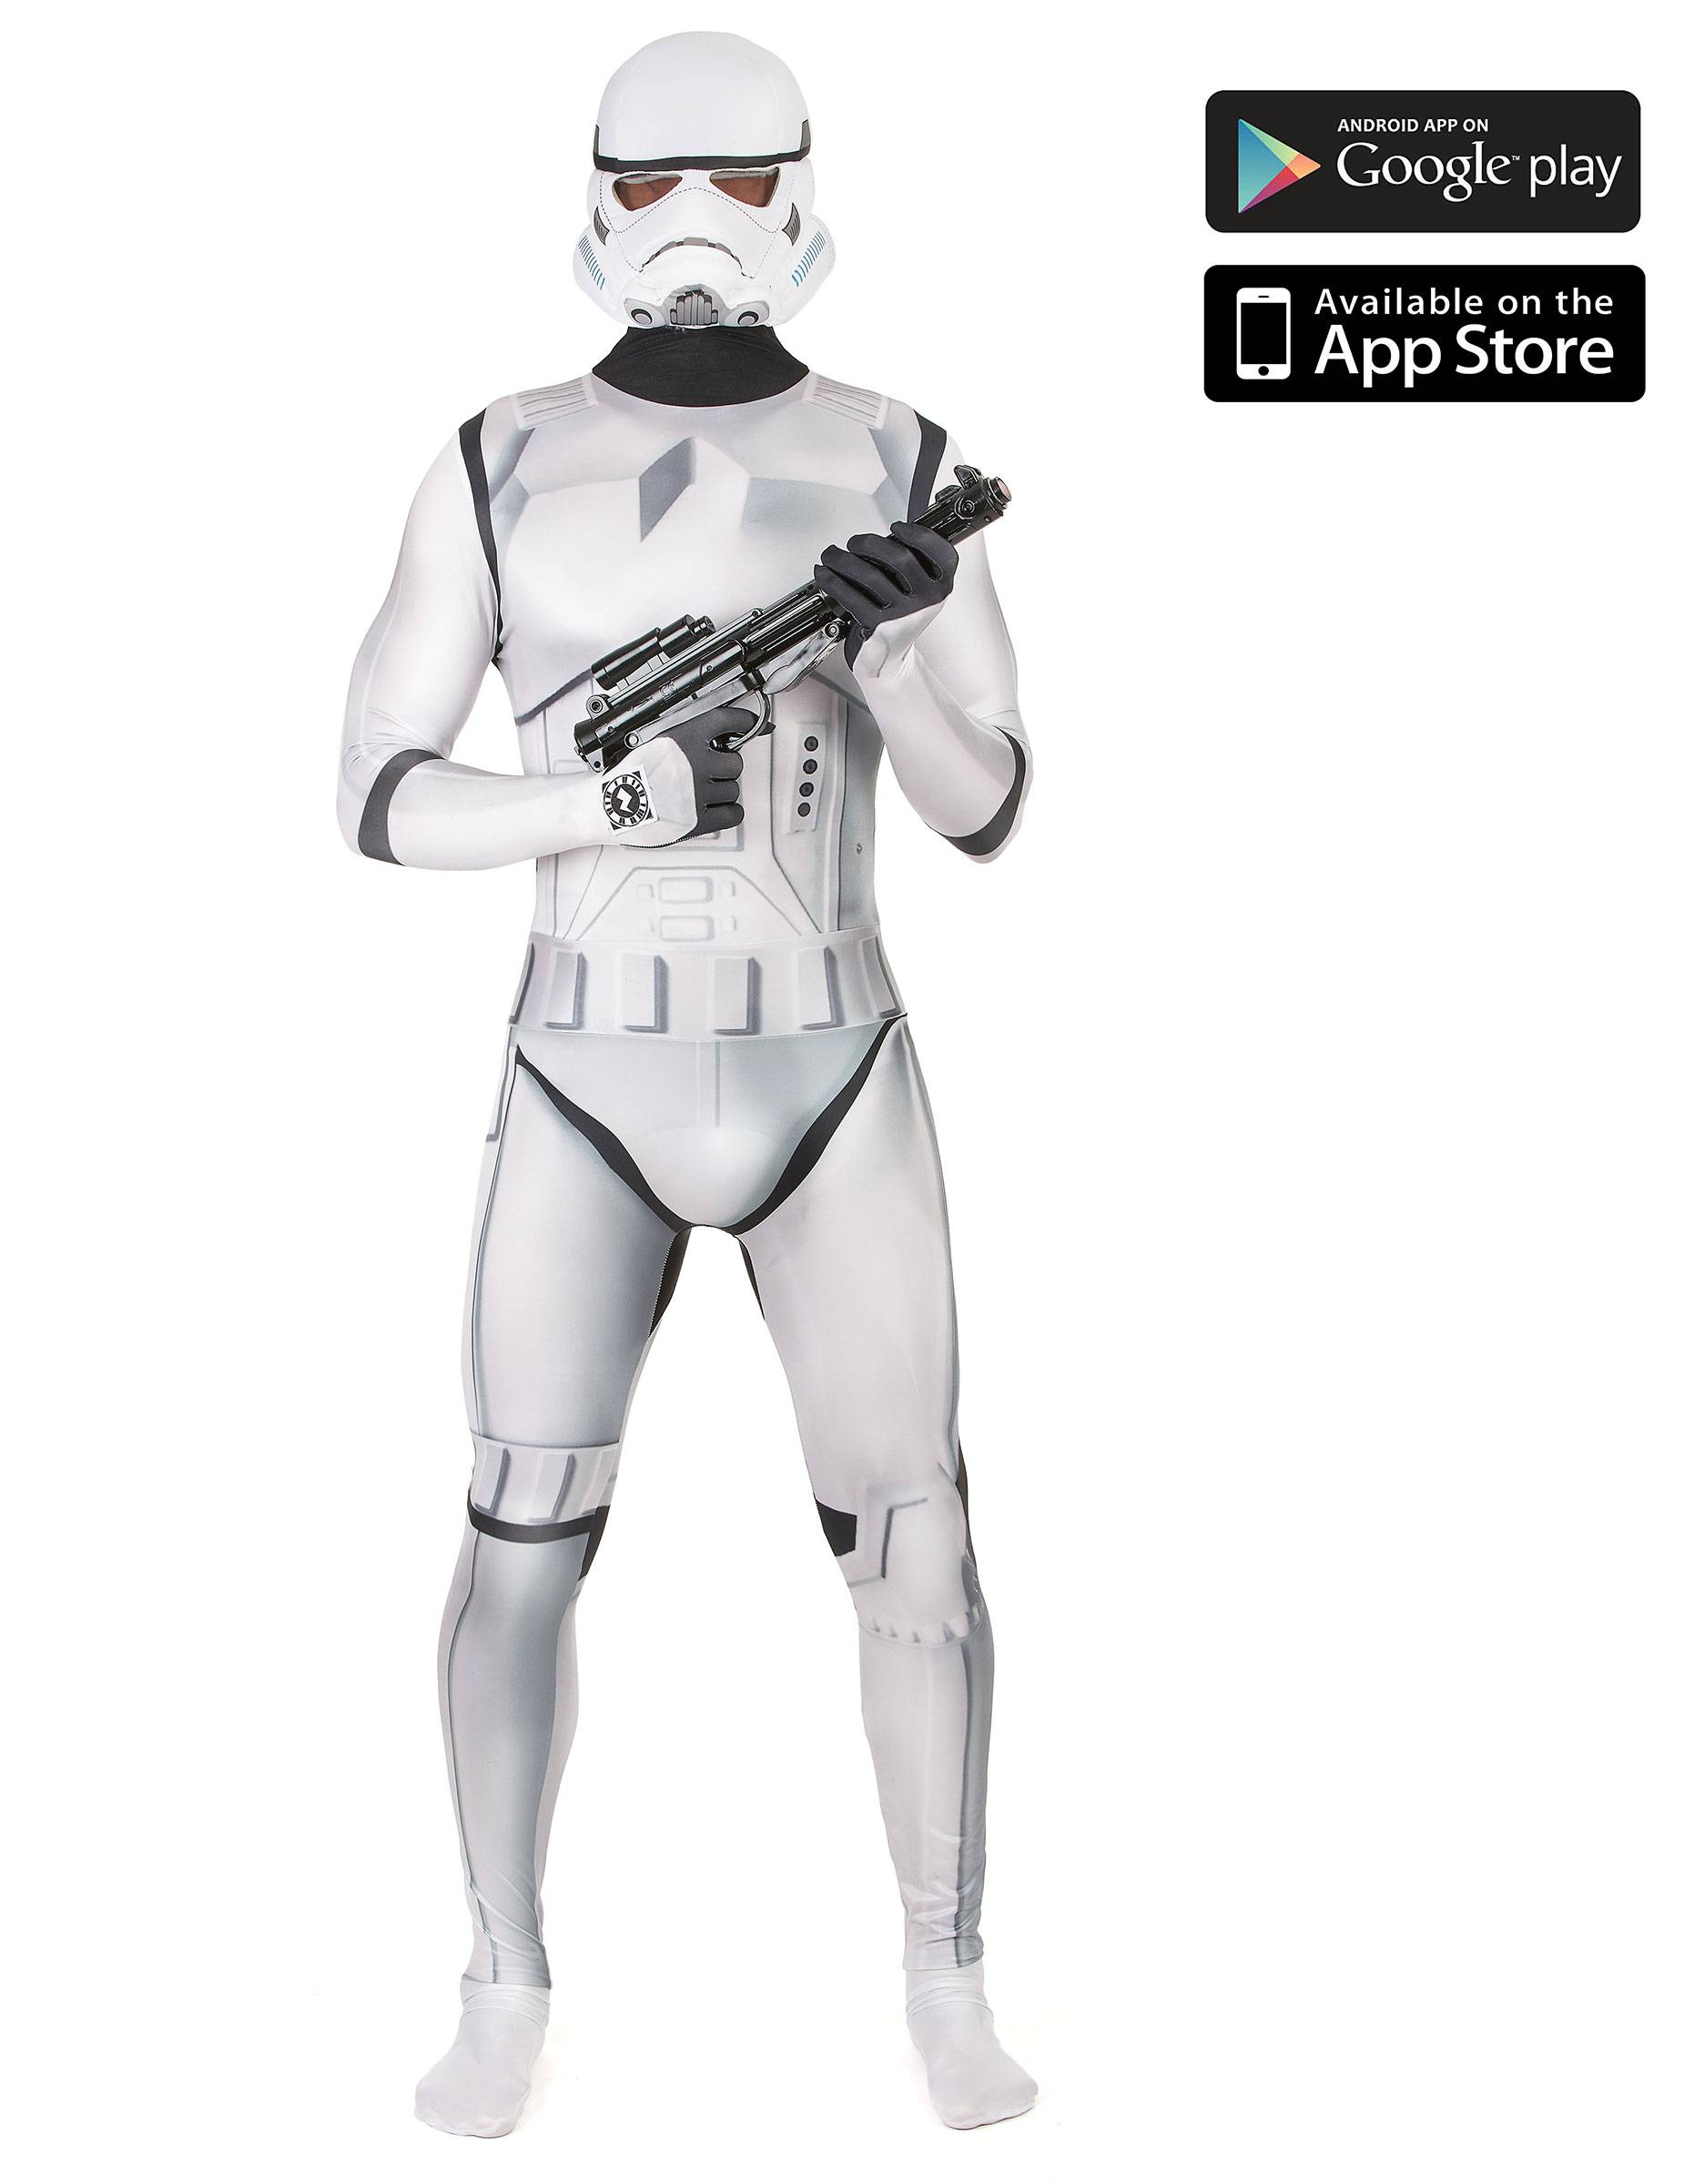 Vegaoo Costume Morphsuits Zappar Stormtrooper adulto - M (160 cm max)